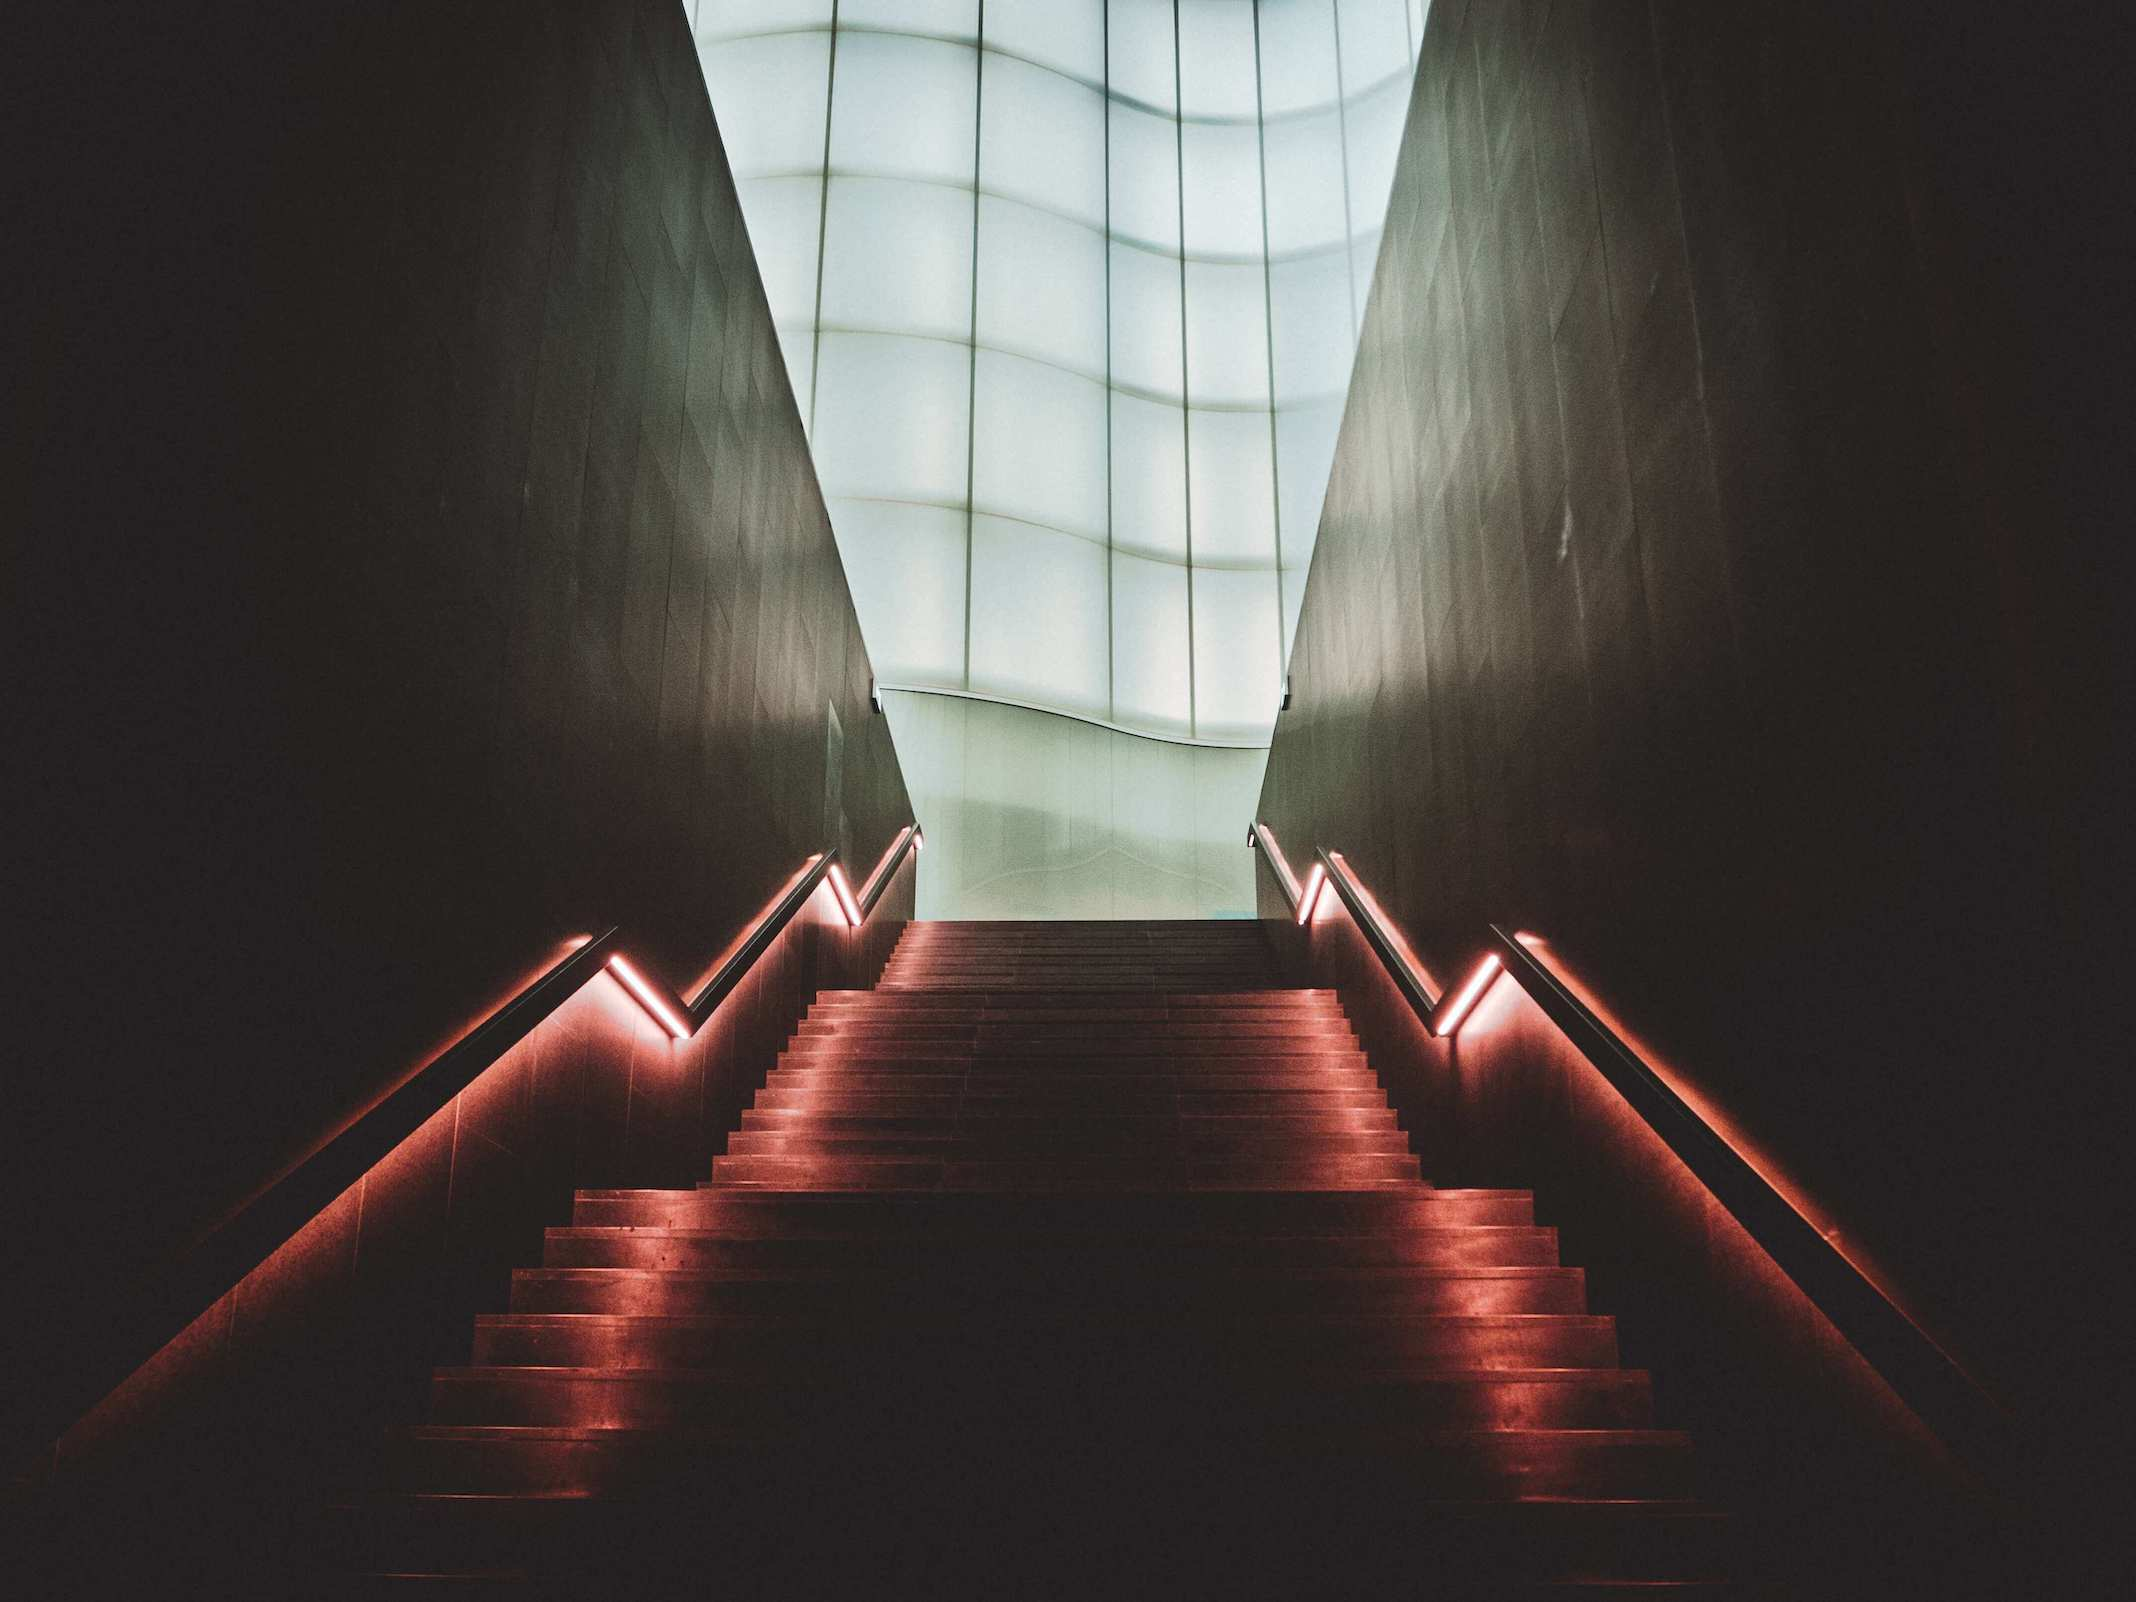 A dark staircase lit with pastel pink lights leading to a gigantic window